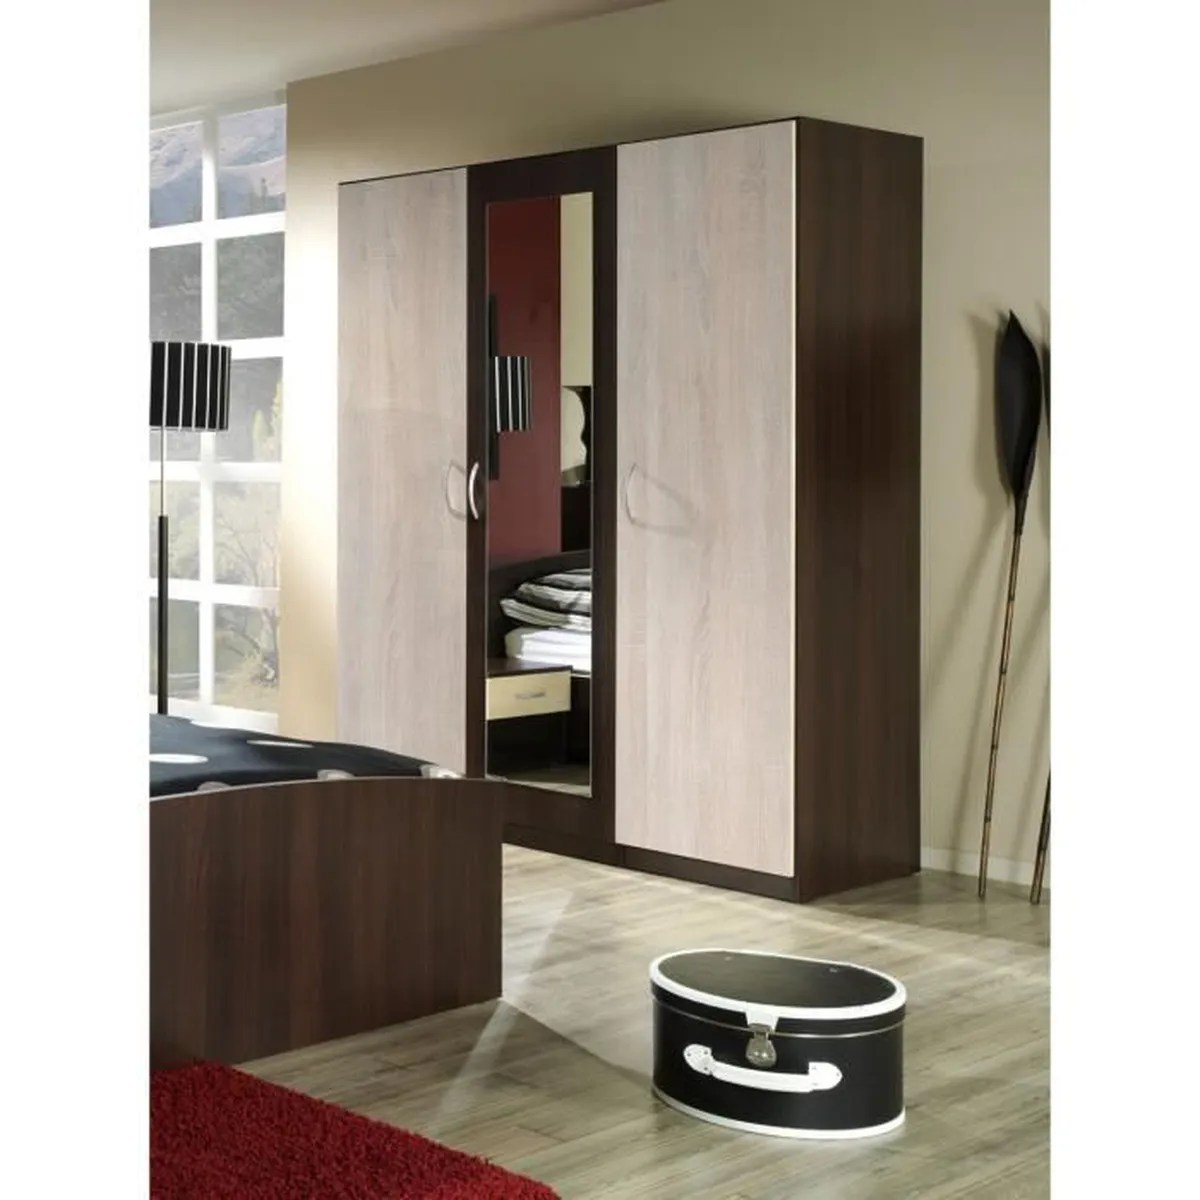 Garde Robe Porte Coulissante Pas Cher Price Factory Armoire Garde Robe Dressing Hit 3 Portes